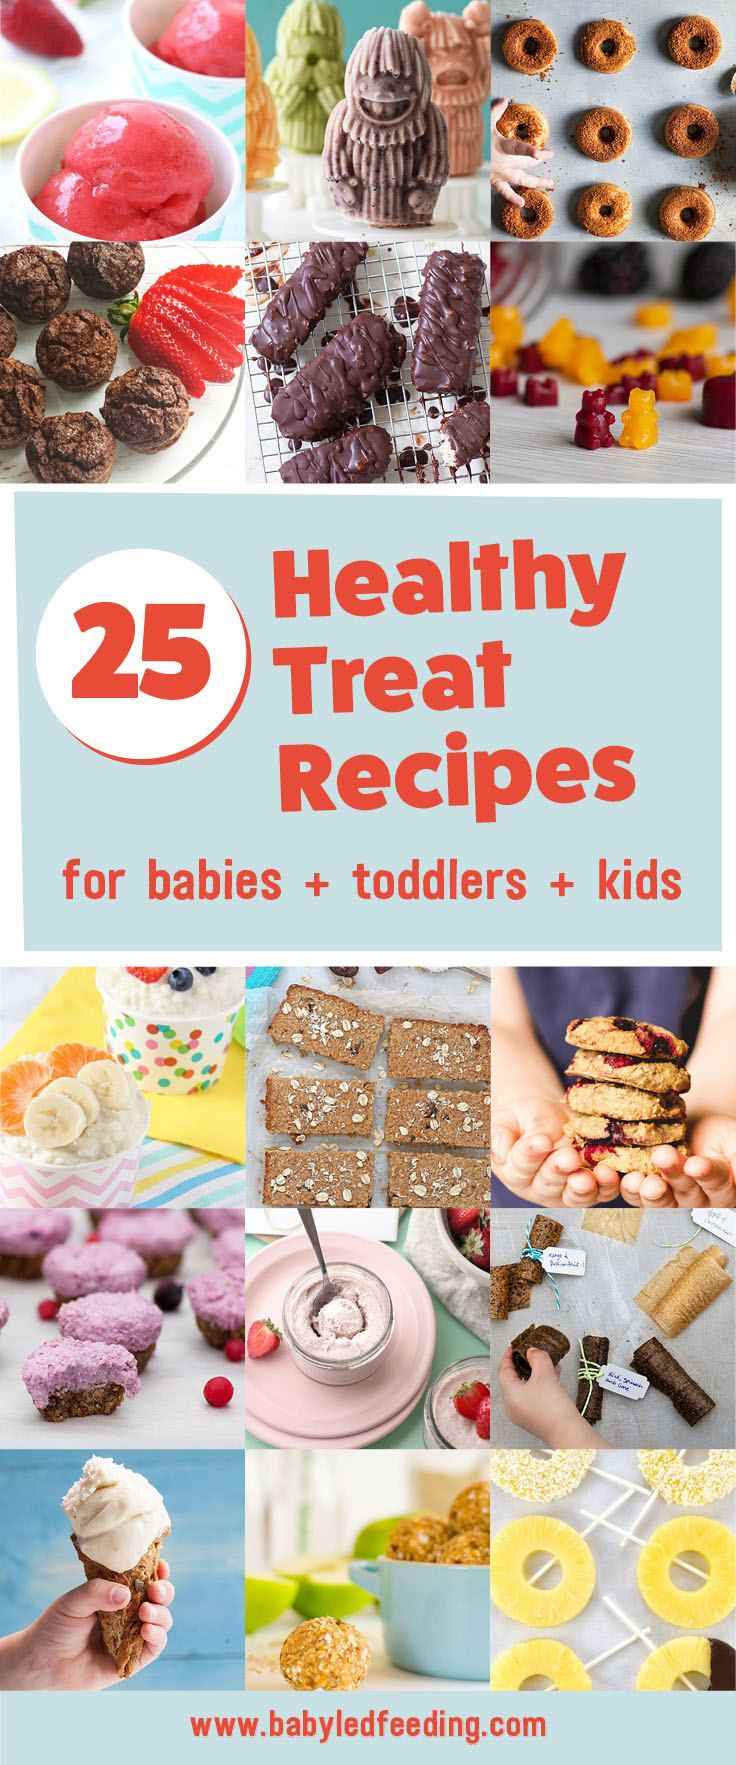 Easy snack recipe for baby led weaning, toddlers, and kids! Healthy treat recipe that are refined sugar free, low sugar, low salt, and packed with whole grains and fruits! No bake bites, healthy doughnuts, homemade fruit roll ups, fruit bars, healthy cookies and more! You can feel good about giving your children these healthy sweet treats! #healthysweets #babyledweaning #kidsnacks #toddlersnacks #babyfood #healthykids